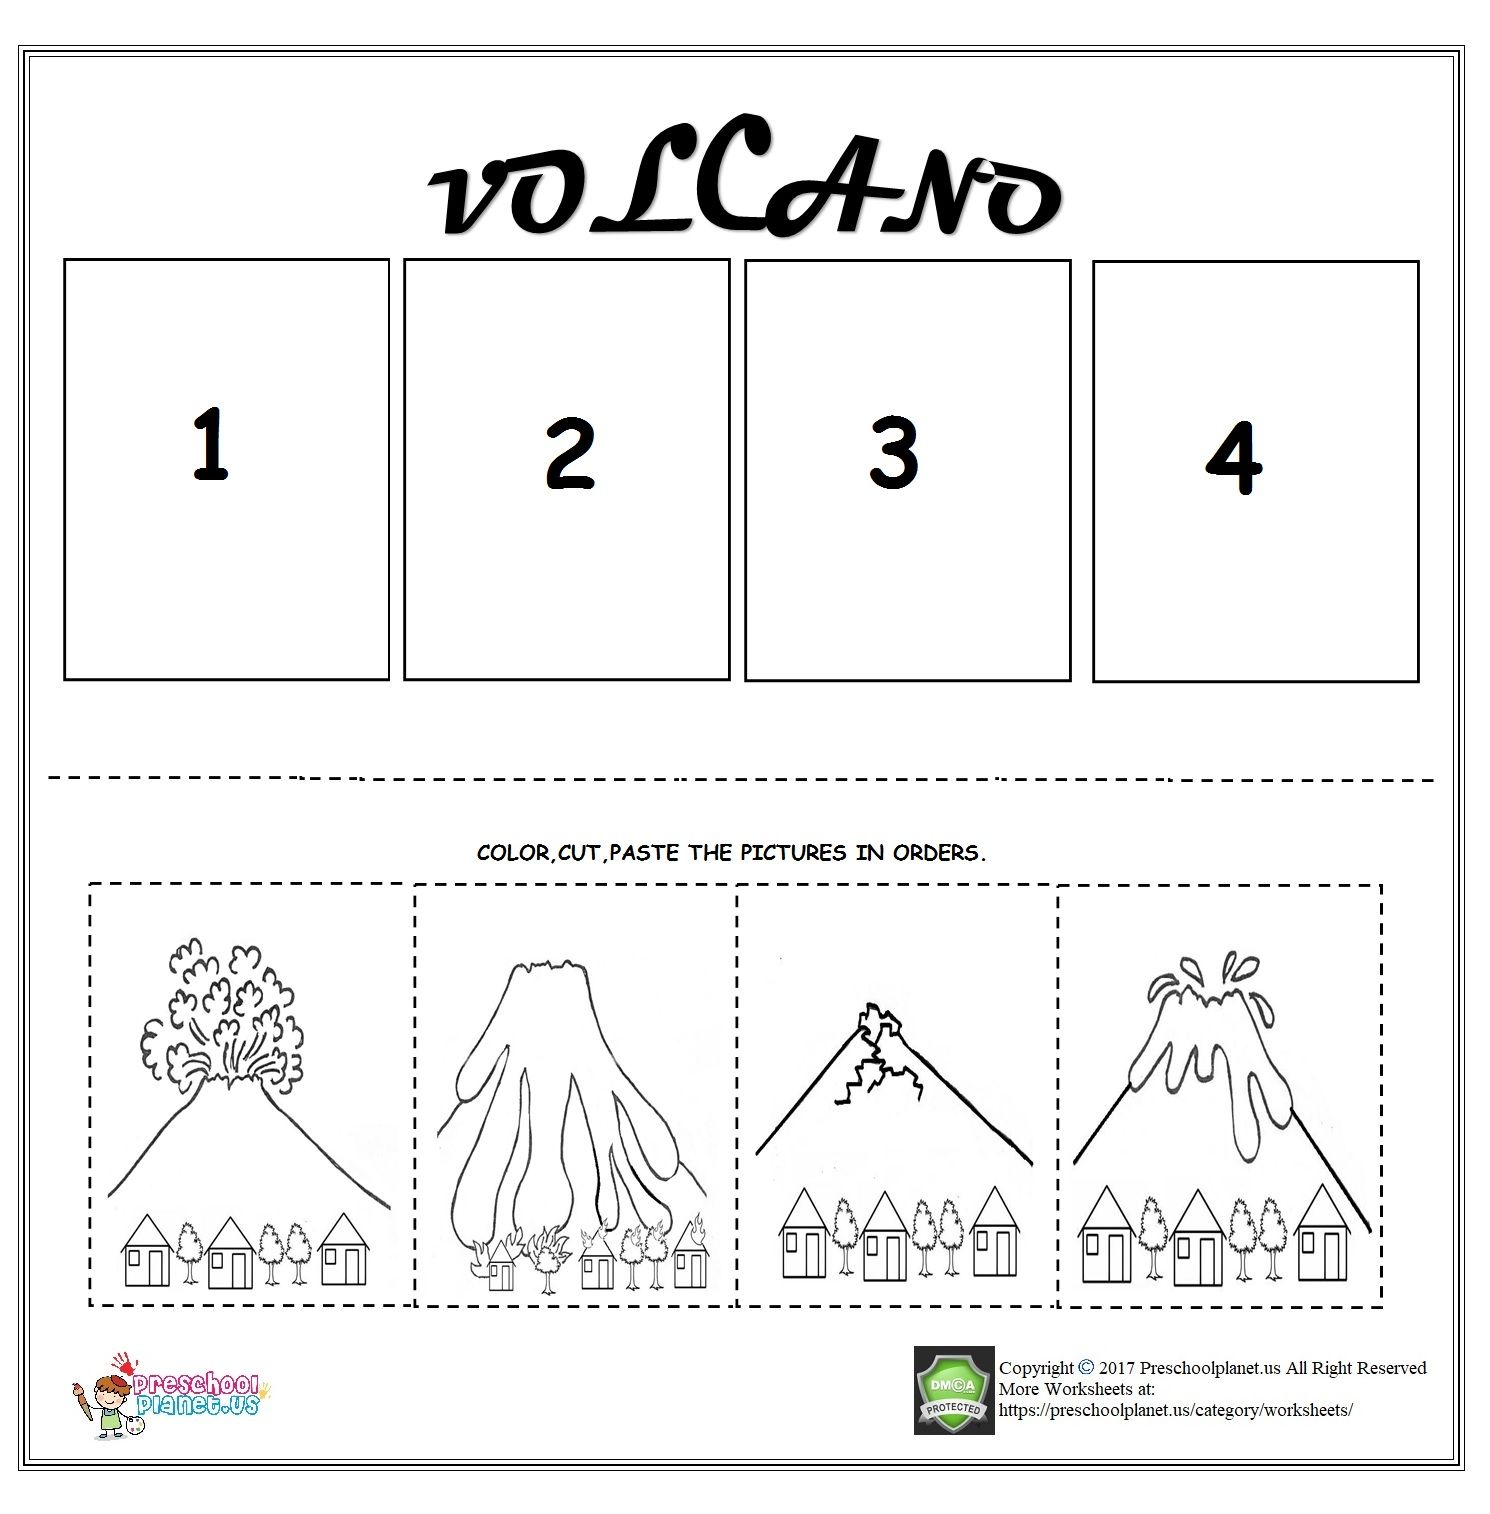 Volcano Sequencing Worksheet For Kids | Sequencing